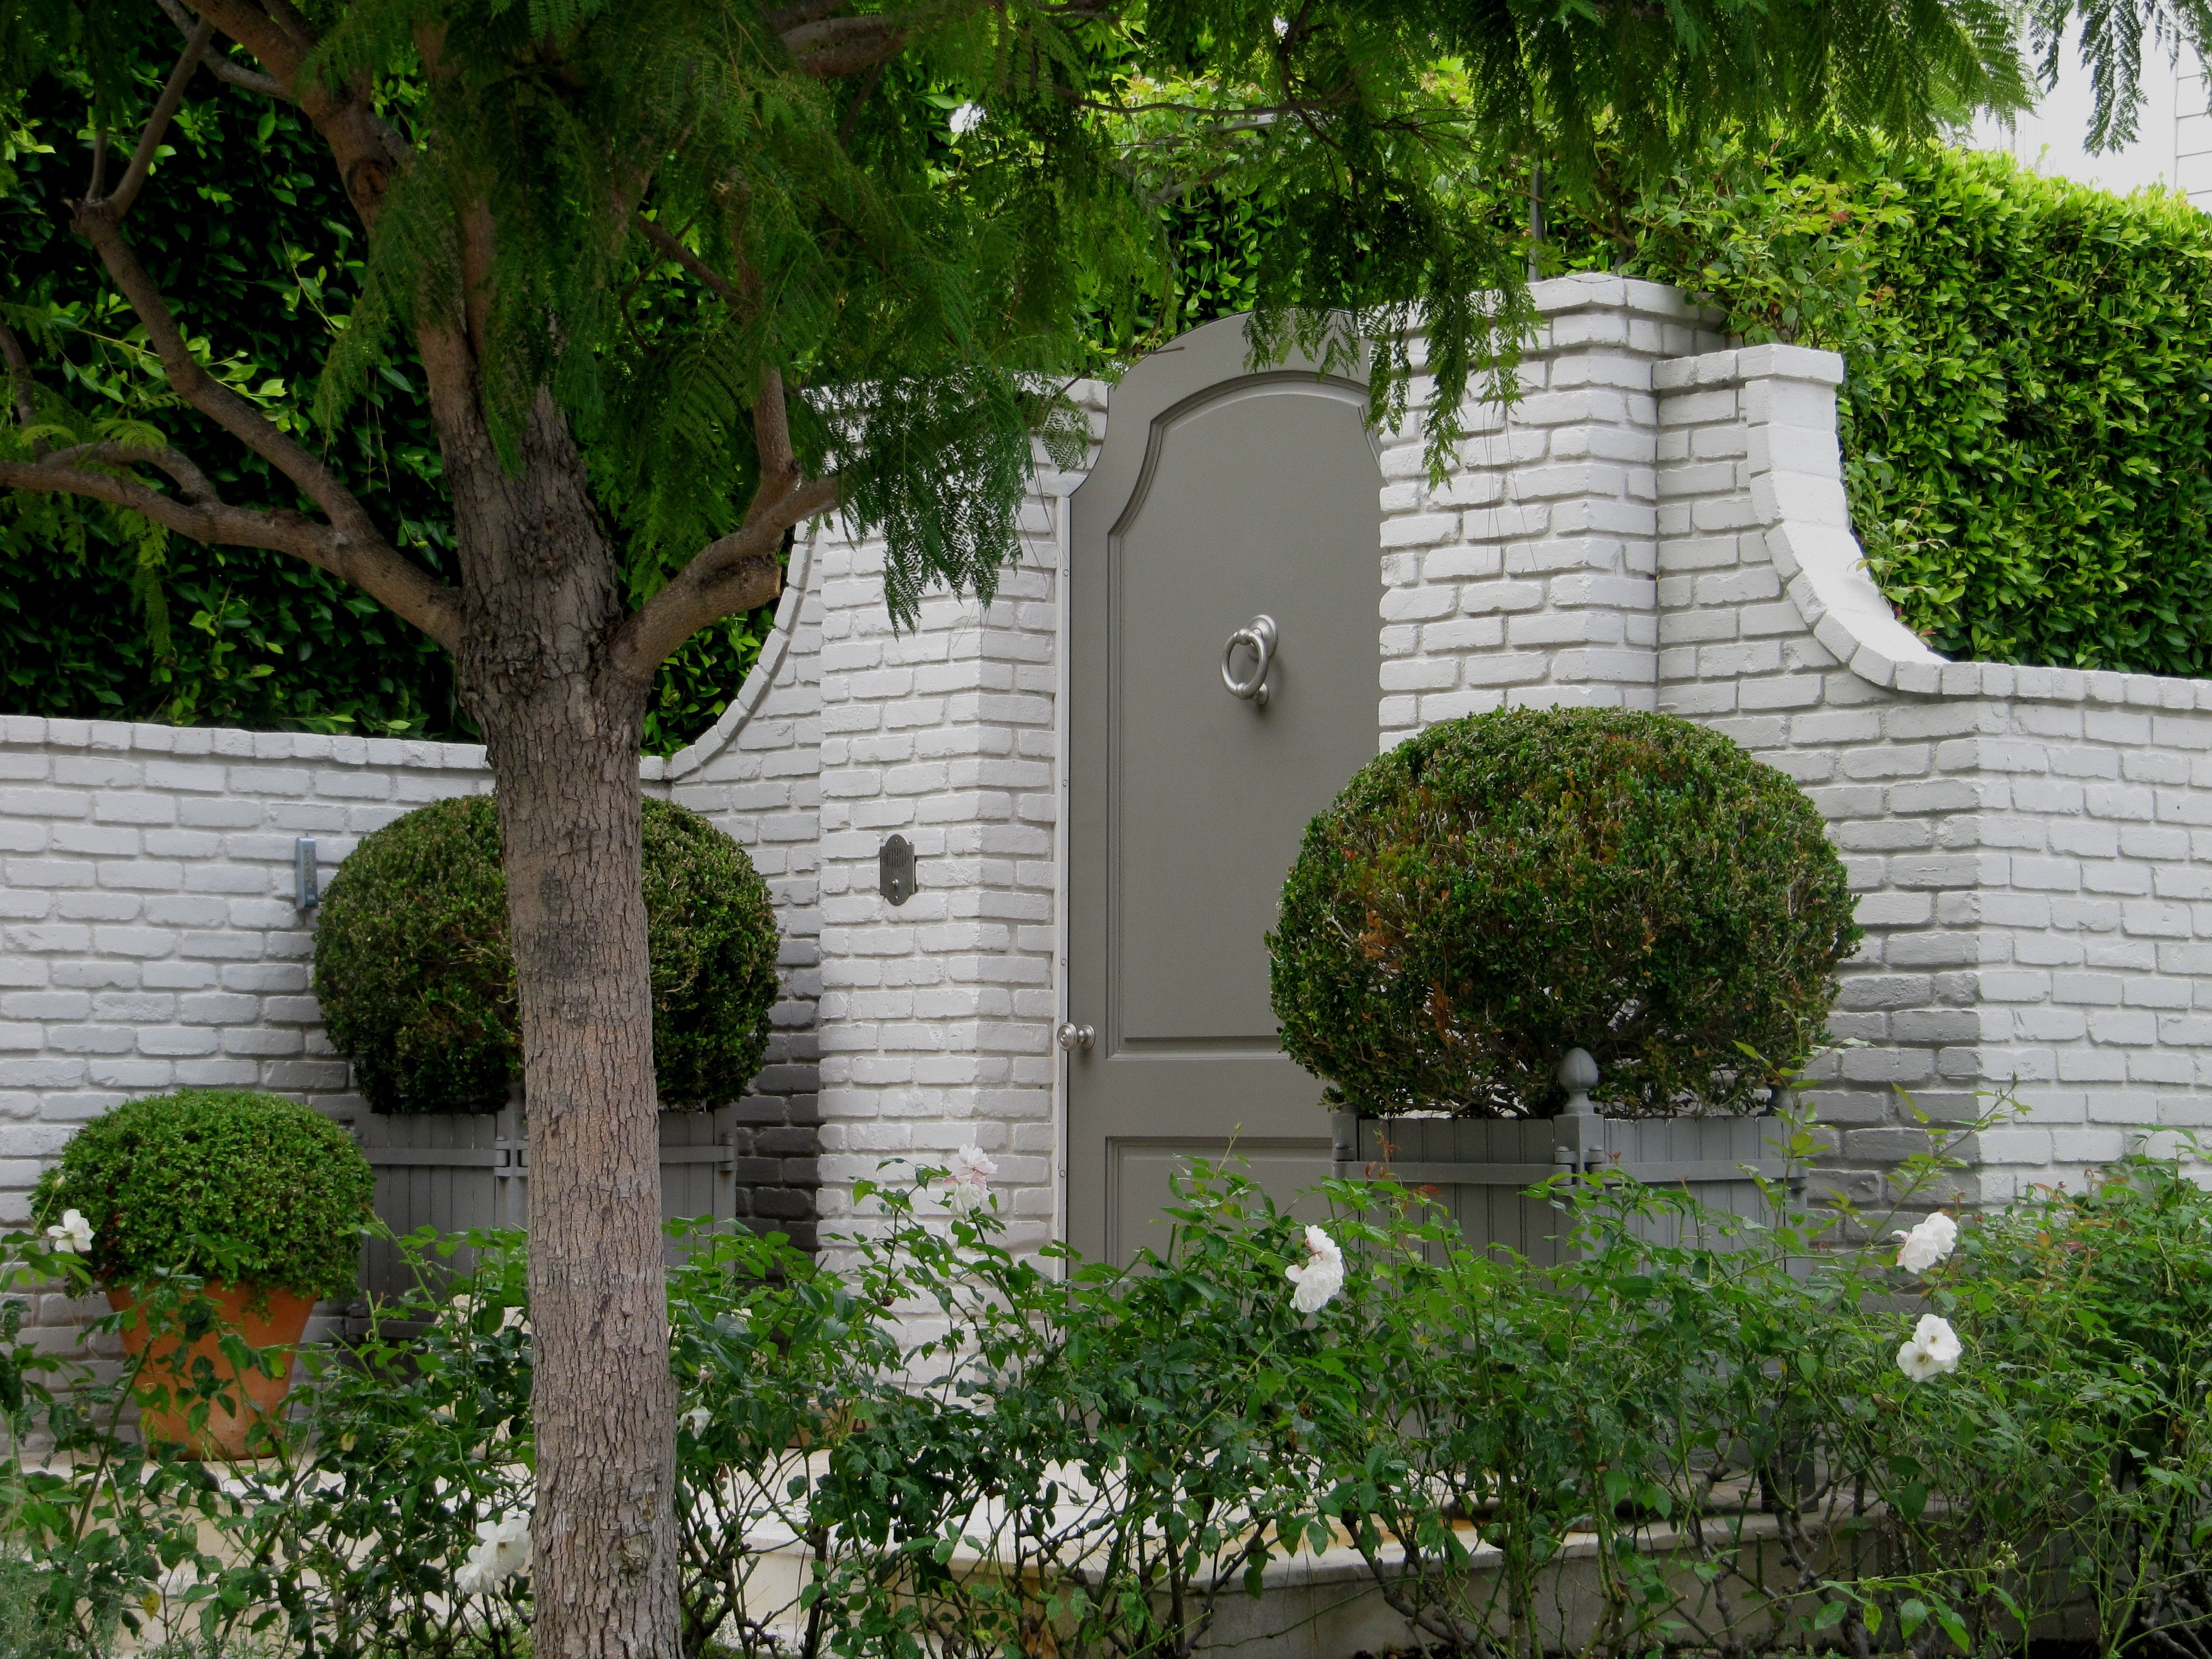 Superb garden wall 3 decorative brick garden walls garden walls elegant painted garden gate in painted brick wall boxwood in wood planters amipublicfo Images